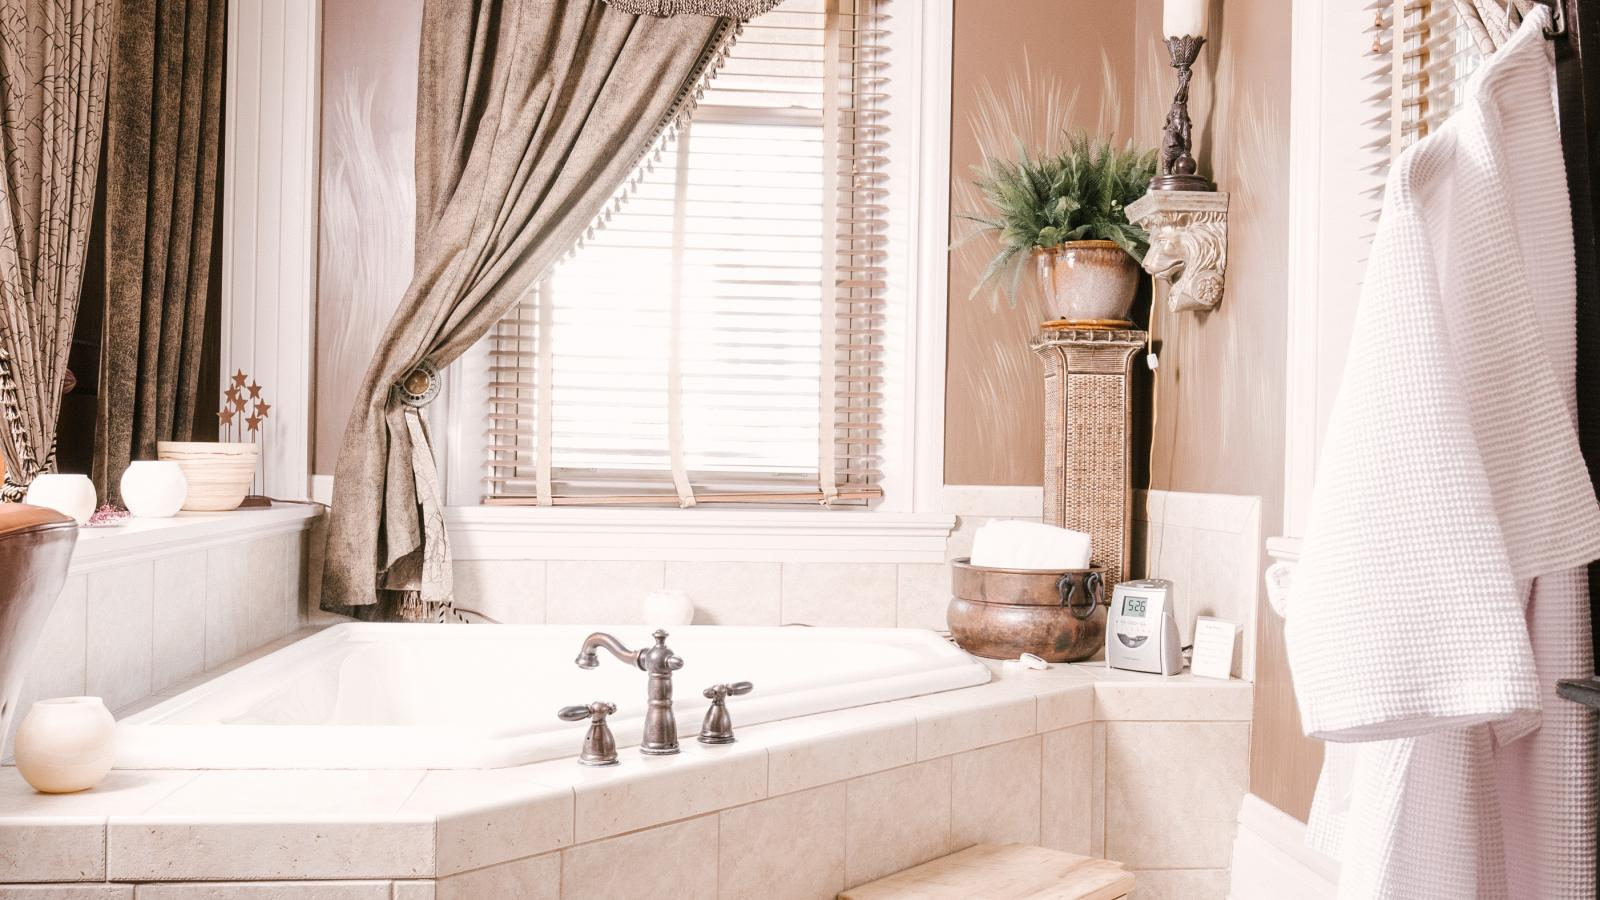 Relax in our Jacuzzi Spa Tub in the Africa Suite